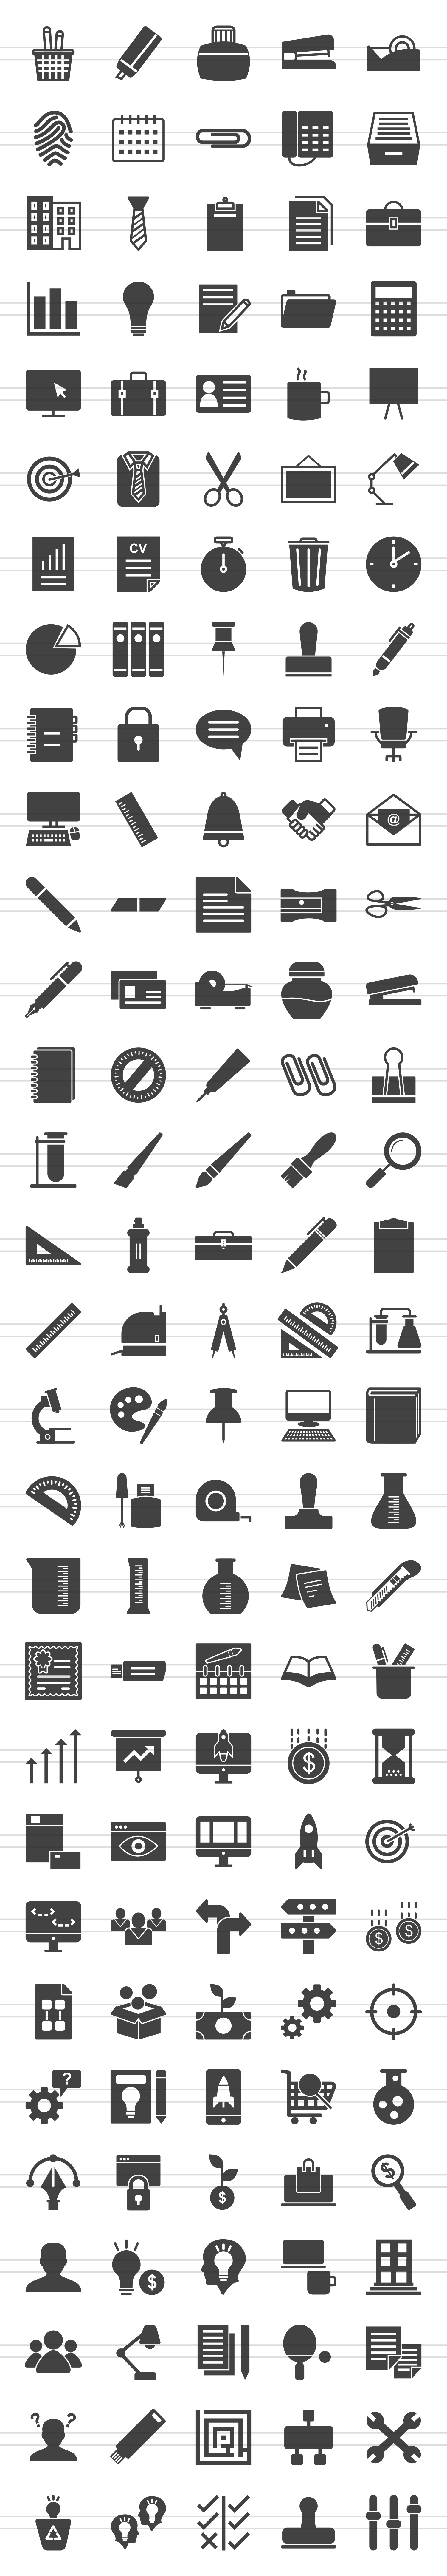 150 Office & Stationery Glyph Icons example image 2